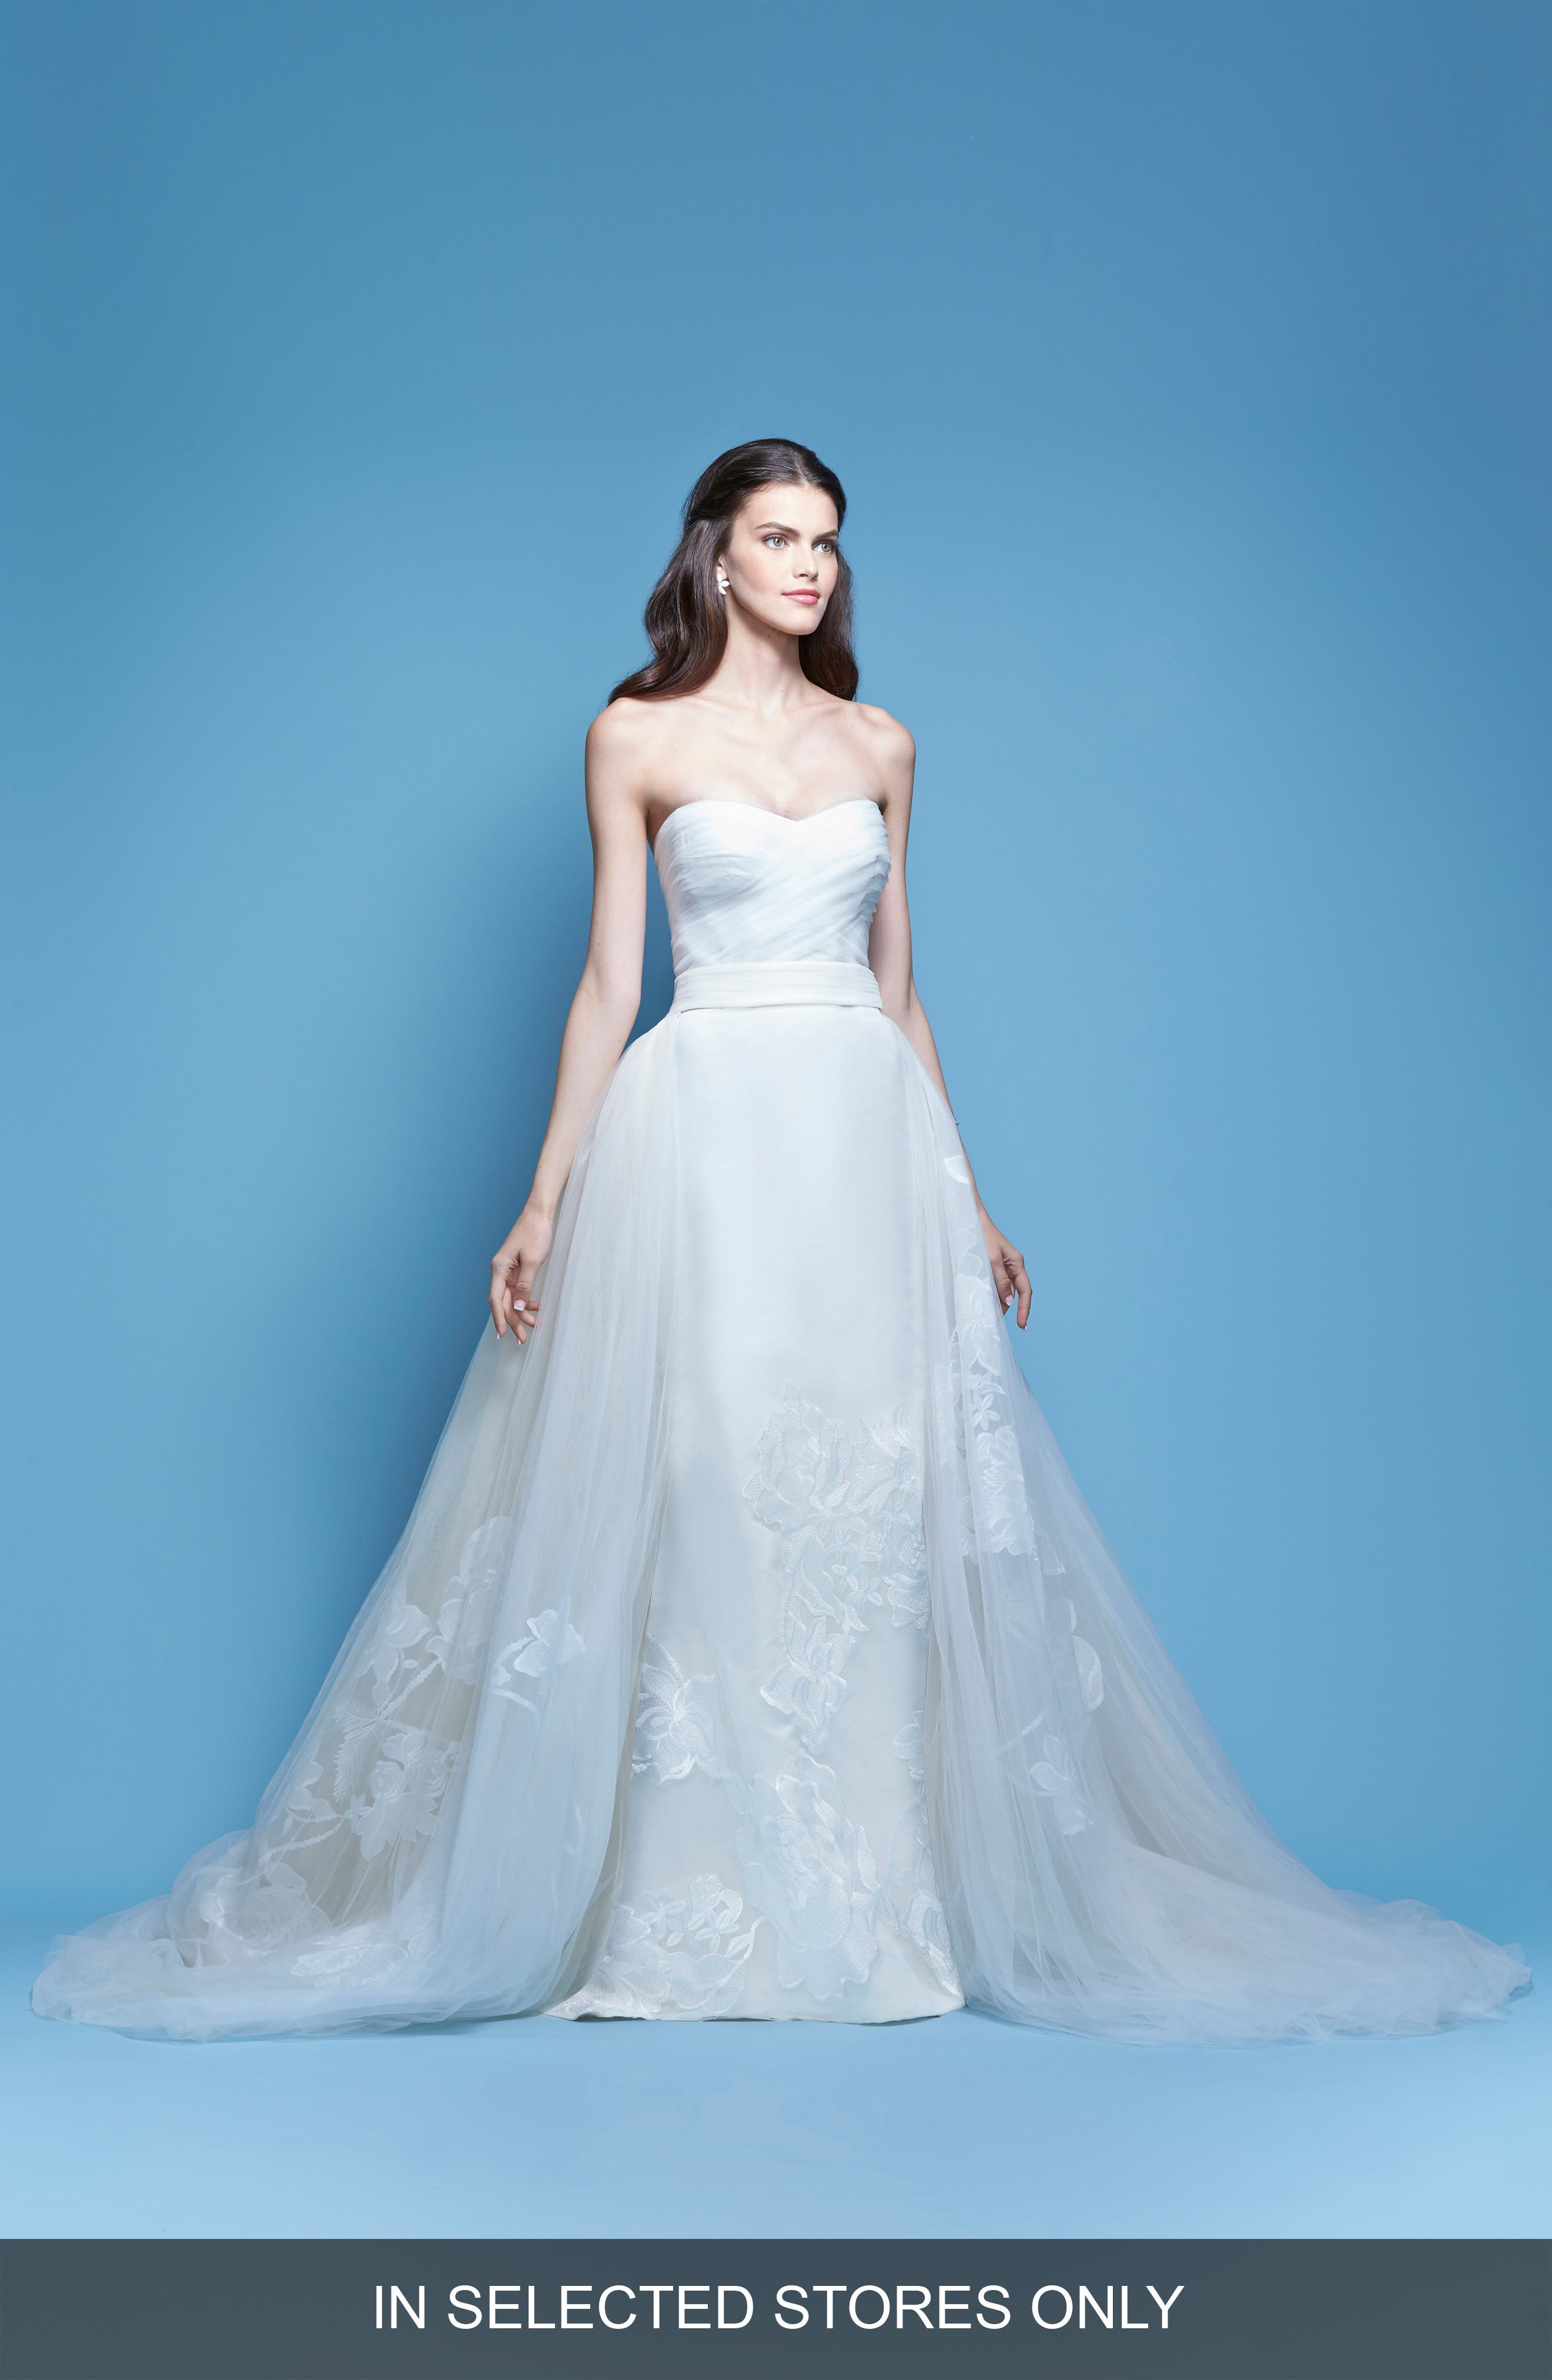 Carolina Herrera 'Josefina' Strapless Silk Faille Mermaid Gown with Detachable Tulle Overlay Skirt (In Stores Only)